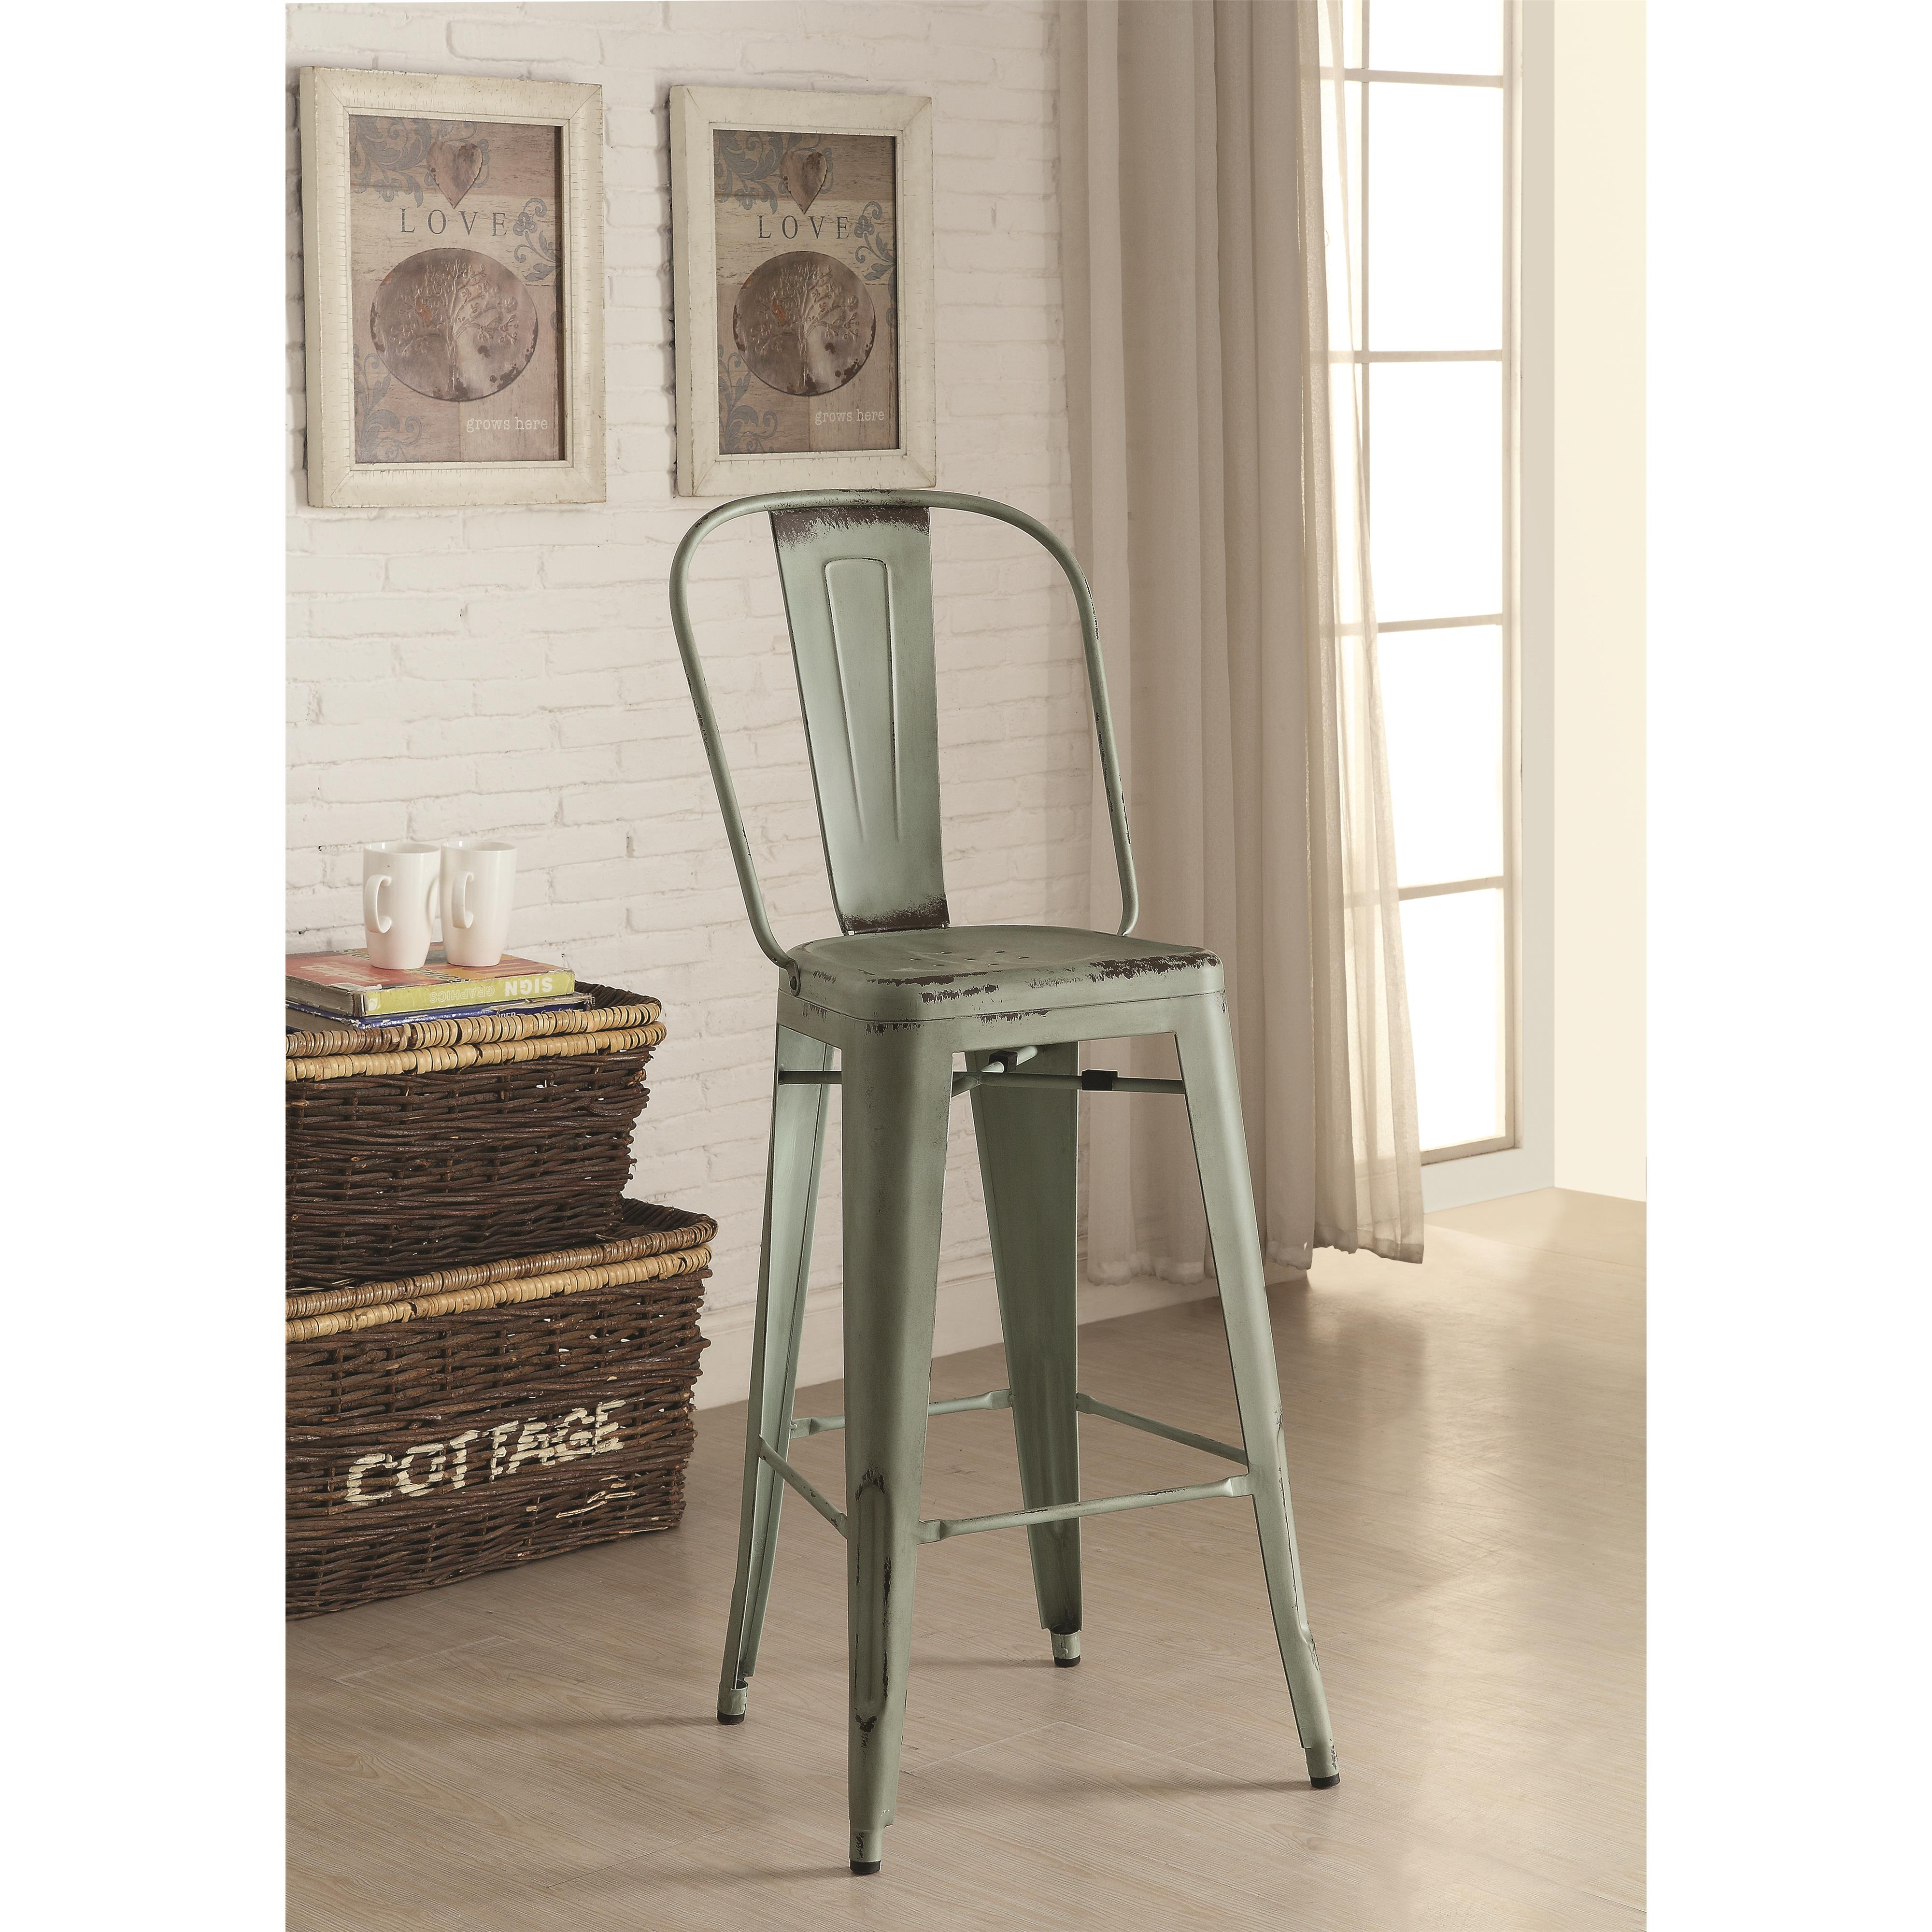 Dining Chairs and Bar Stools Galvanized Metal Bar Stool  : 1 29 from furniturewares.com size 4000 x 4000 jpeg 1322kB